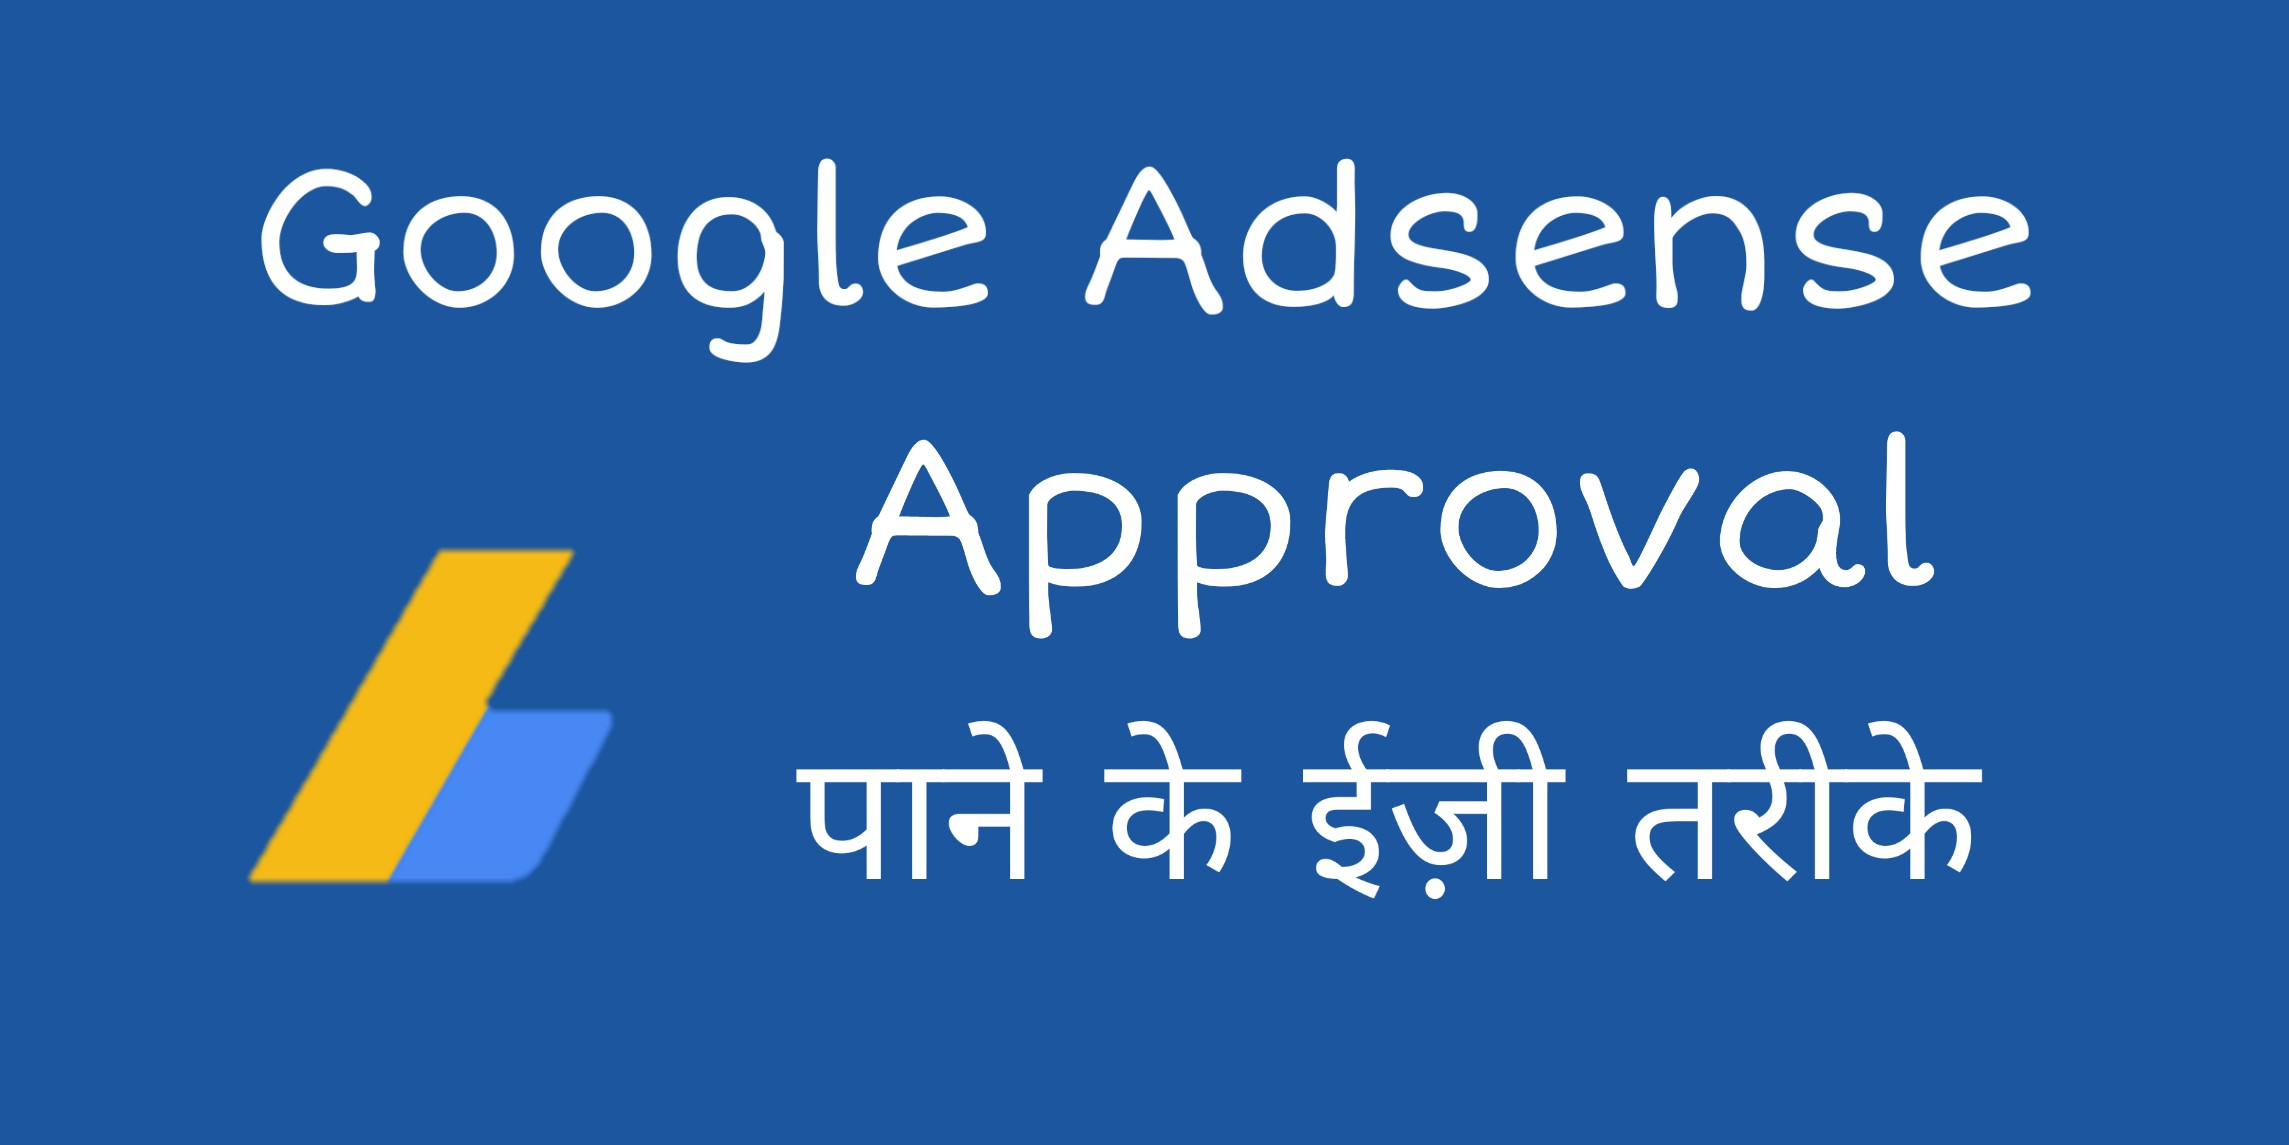 Google Adsense Approval Kaise Paye – How to Get Adsense Approval in Hindi